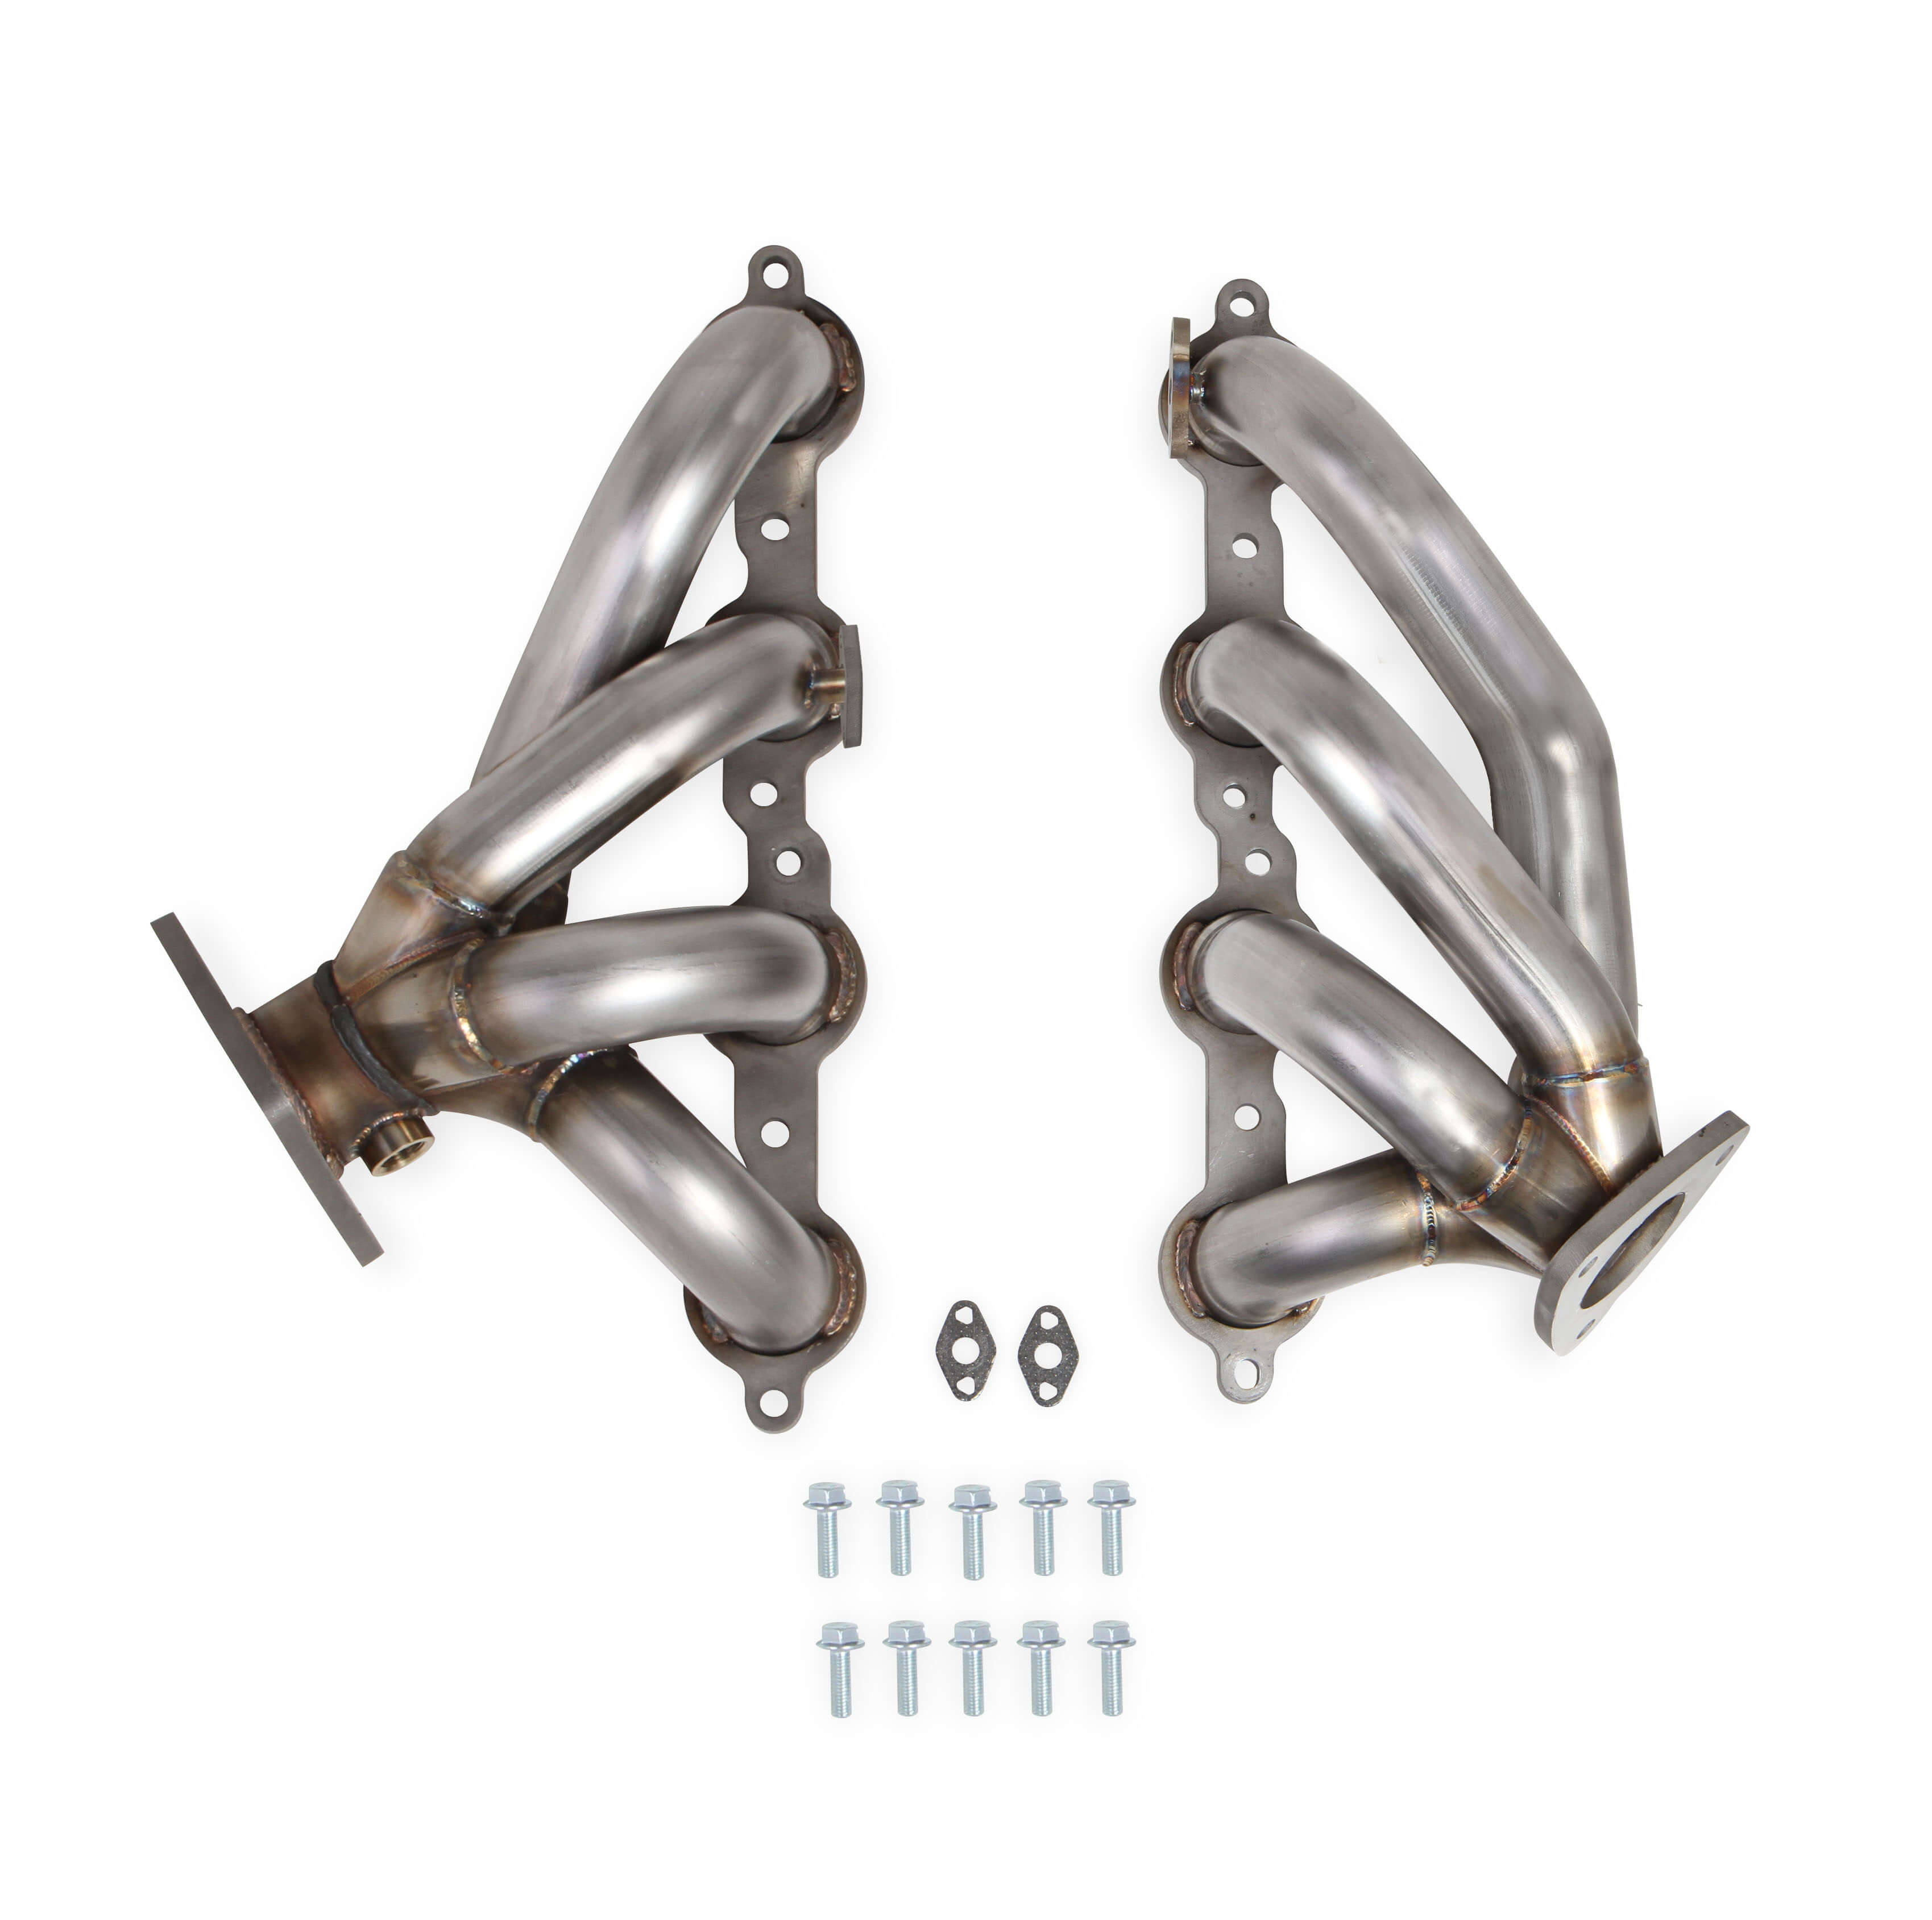 "2001-2002 LS1 Fbody Hooker Headers Blackheart Performance 1 3/4"" 304SS Shorty Headers"